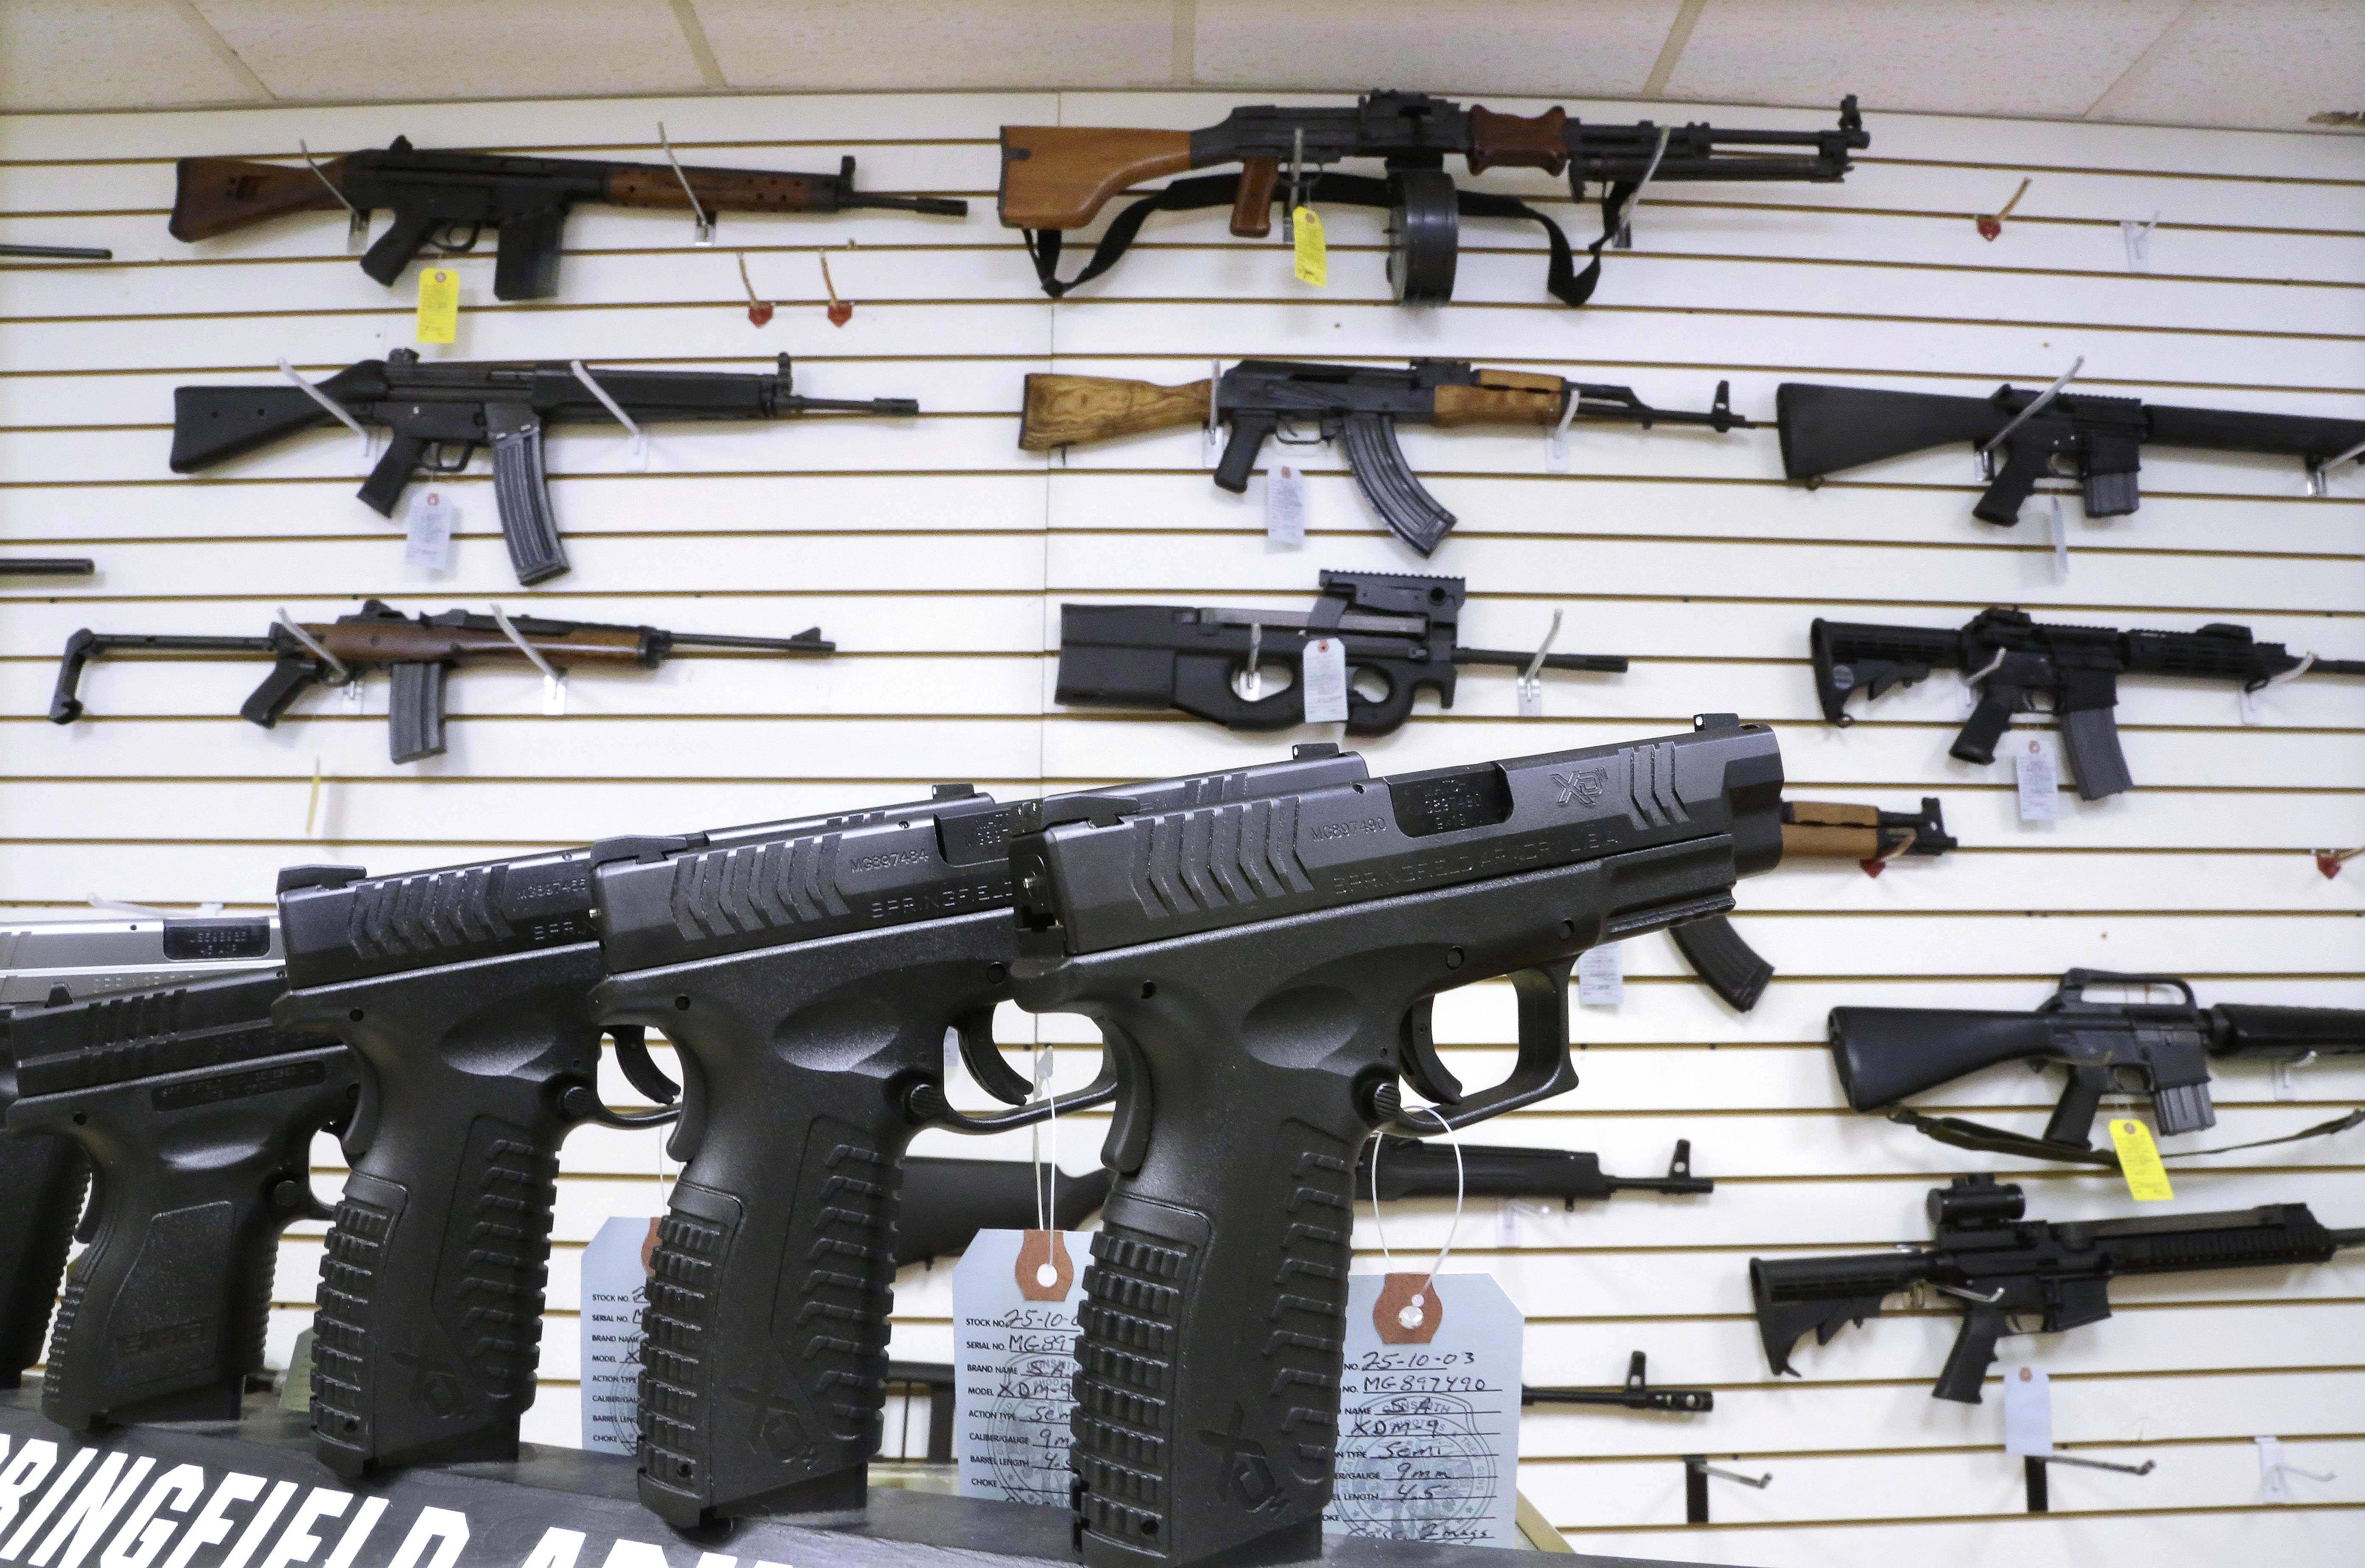 In this Jan. 16 photo, assault weapons and handguns are seen for sale at Capitol City Arms Supply in Springfield. In a questionnaire for The Associated Press, the four GOP candidates for governor, state Sens. Bill Brady and Kirk Dillard, state Treasurer Dan Rutherford and businessman Bruce Rauner disagree on whether assault-style weapons should be banned. They also disagree on whether to support a measure creating minimum prison sentences for gun crimes.